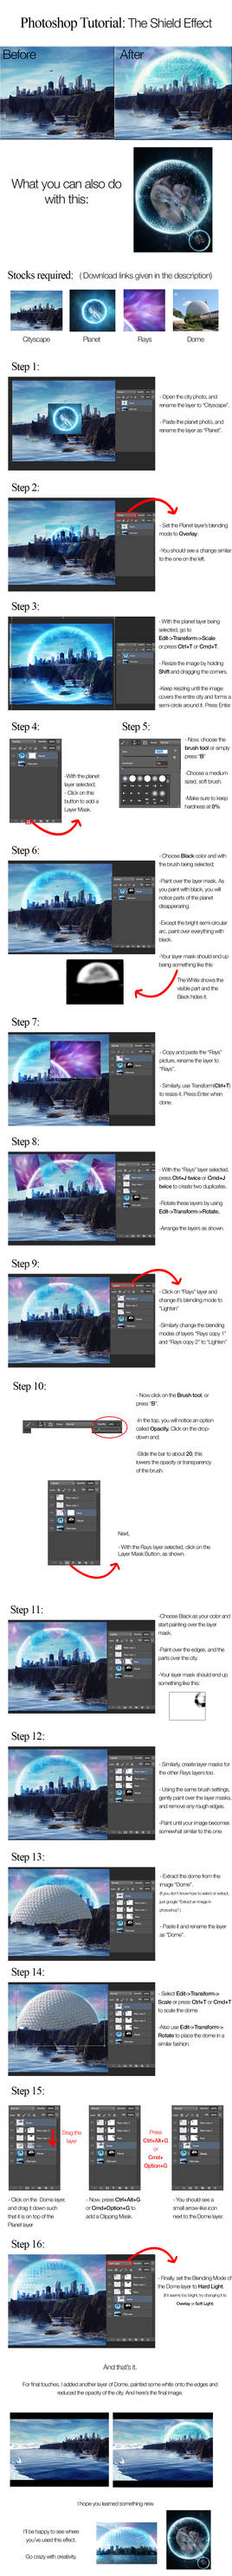 The Shield Effect-Photoshop Tutorial